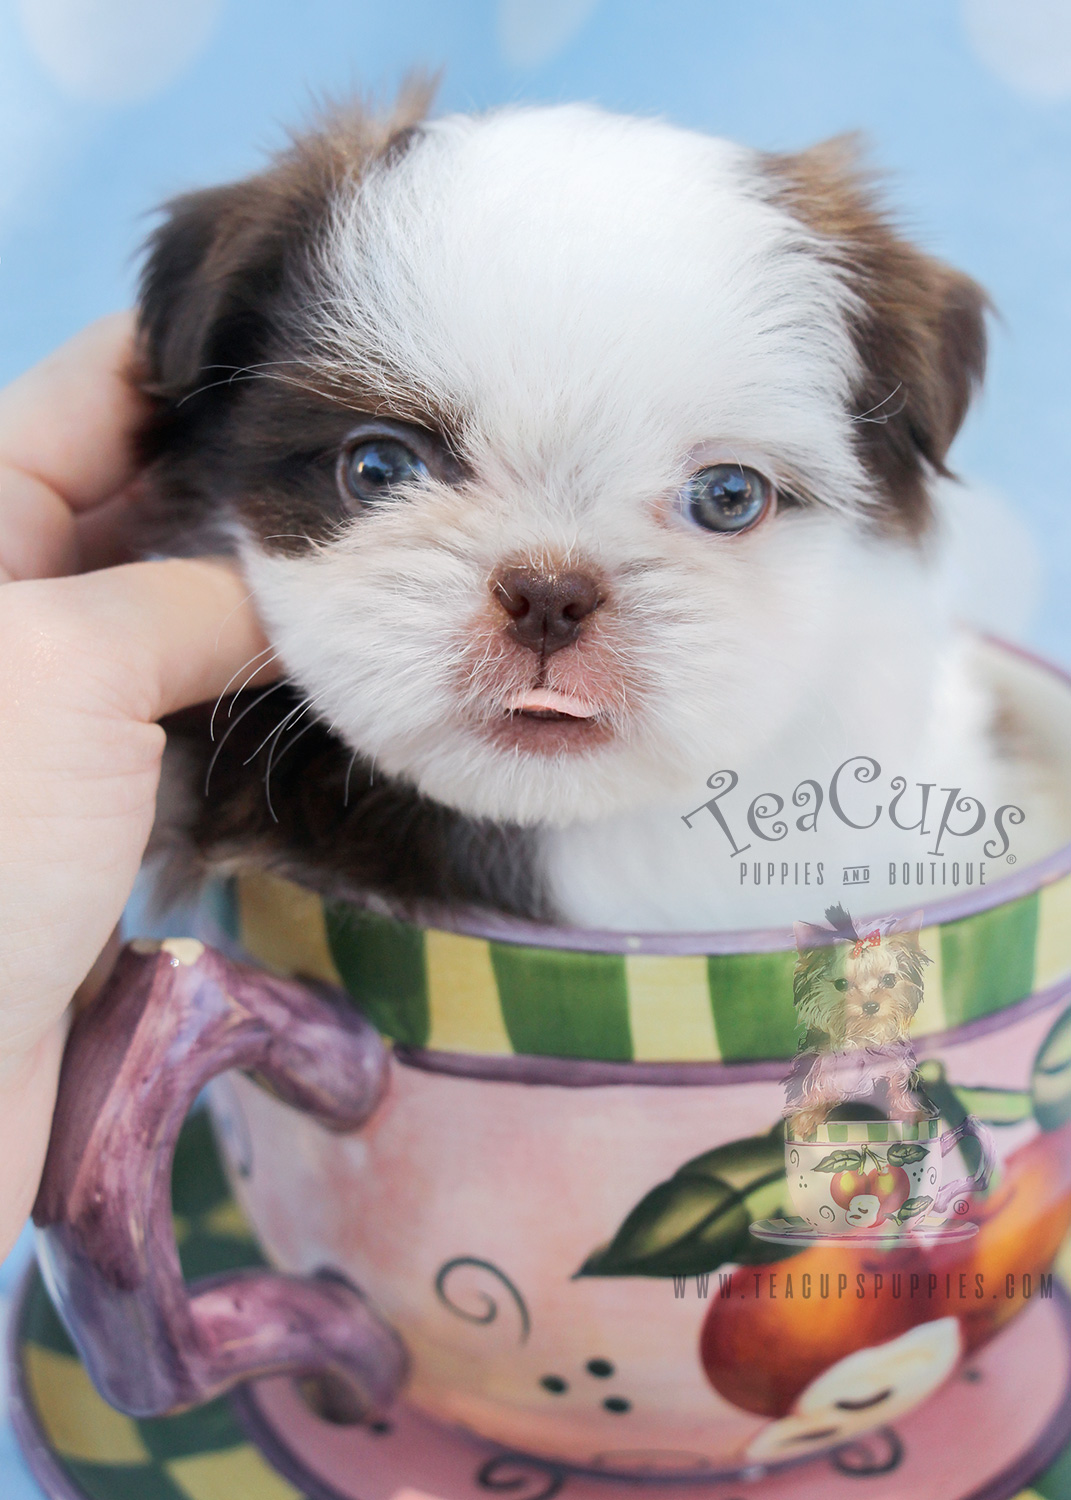 Shih Tzu Puppy For Sale by TeaCups, Puppies and Boutique